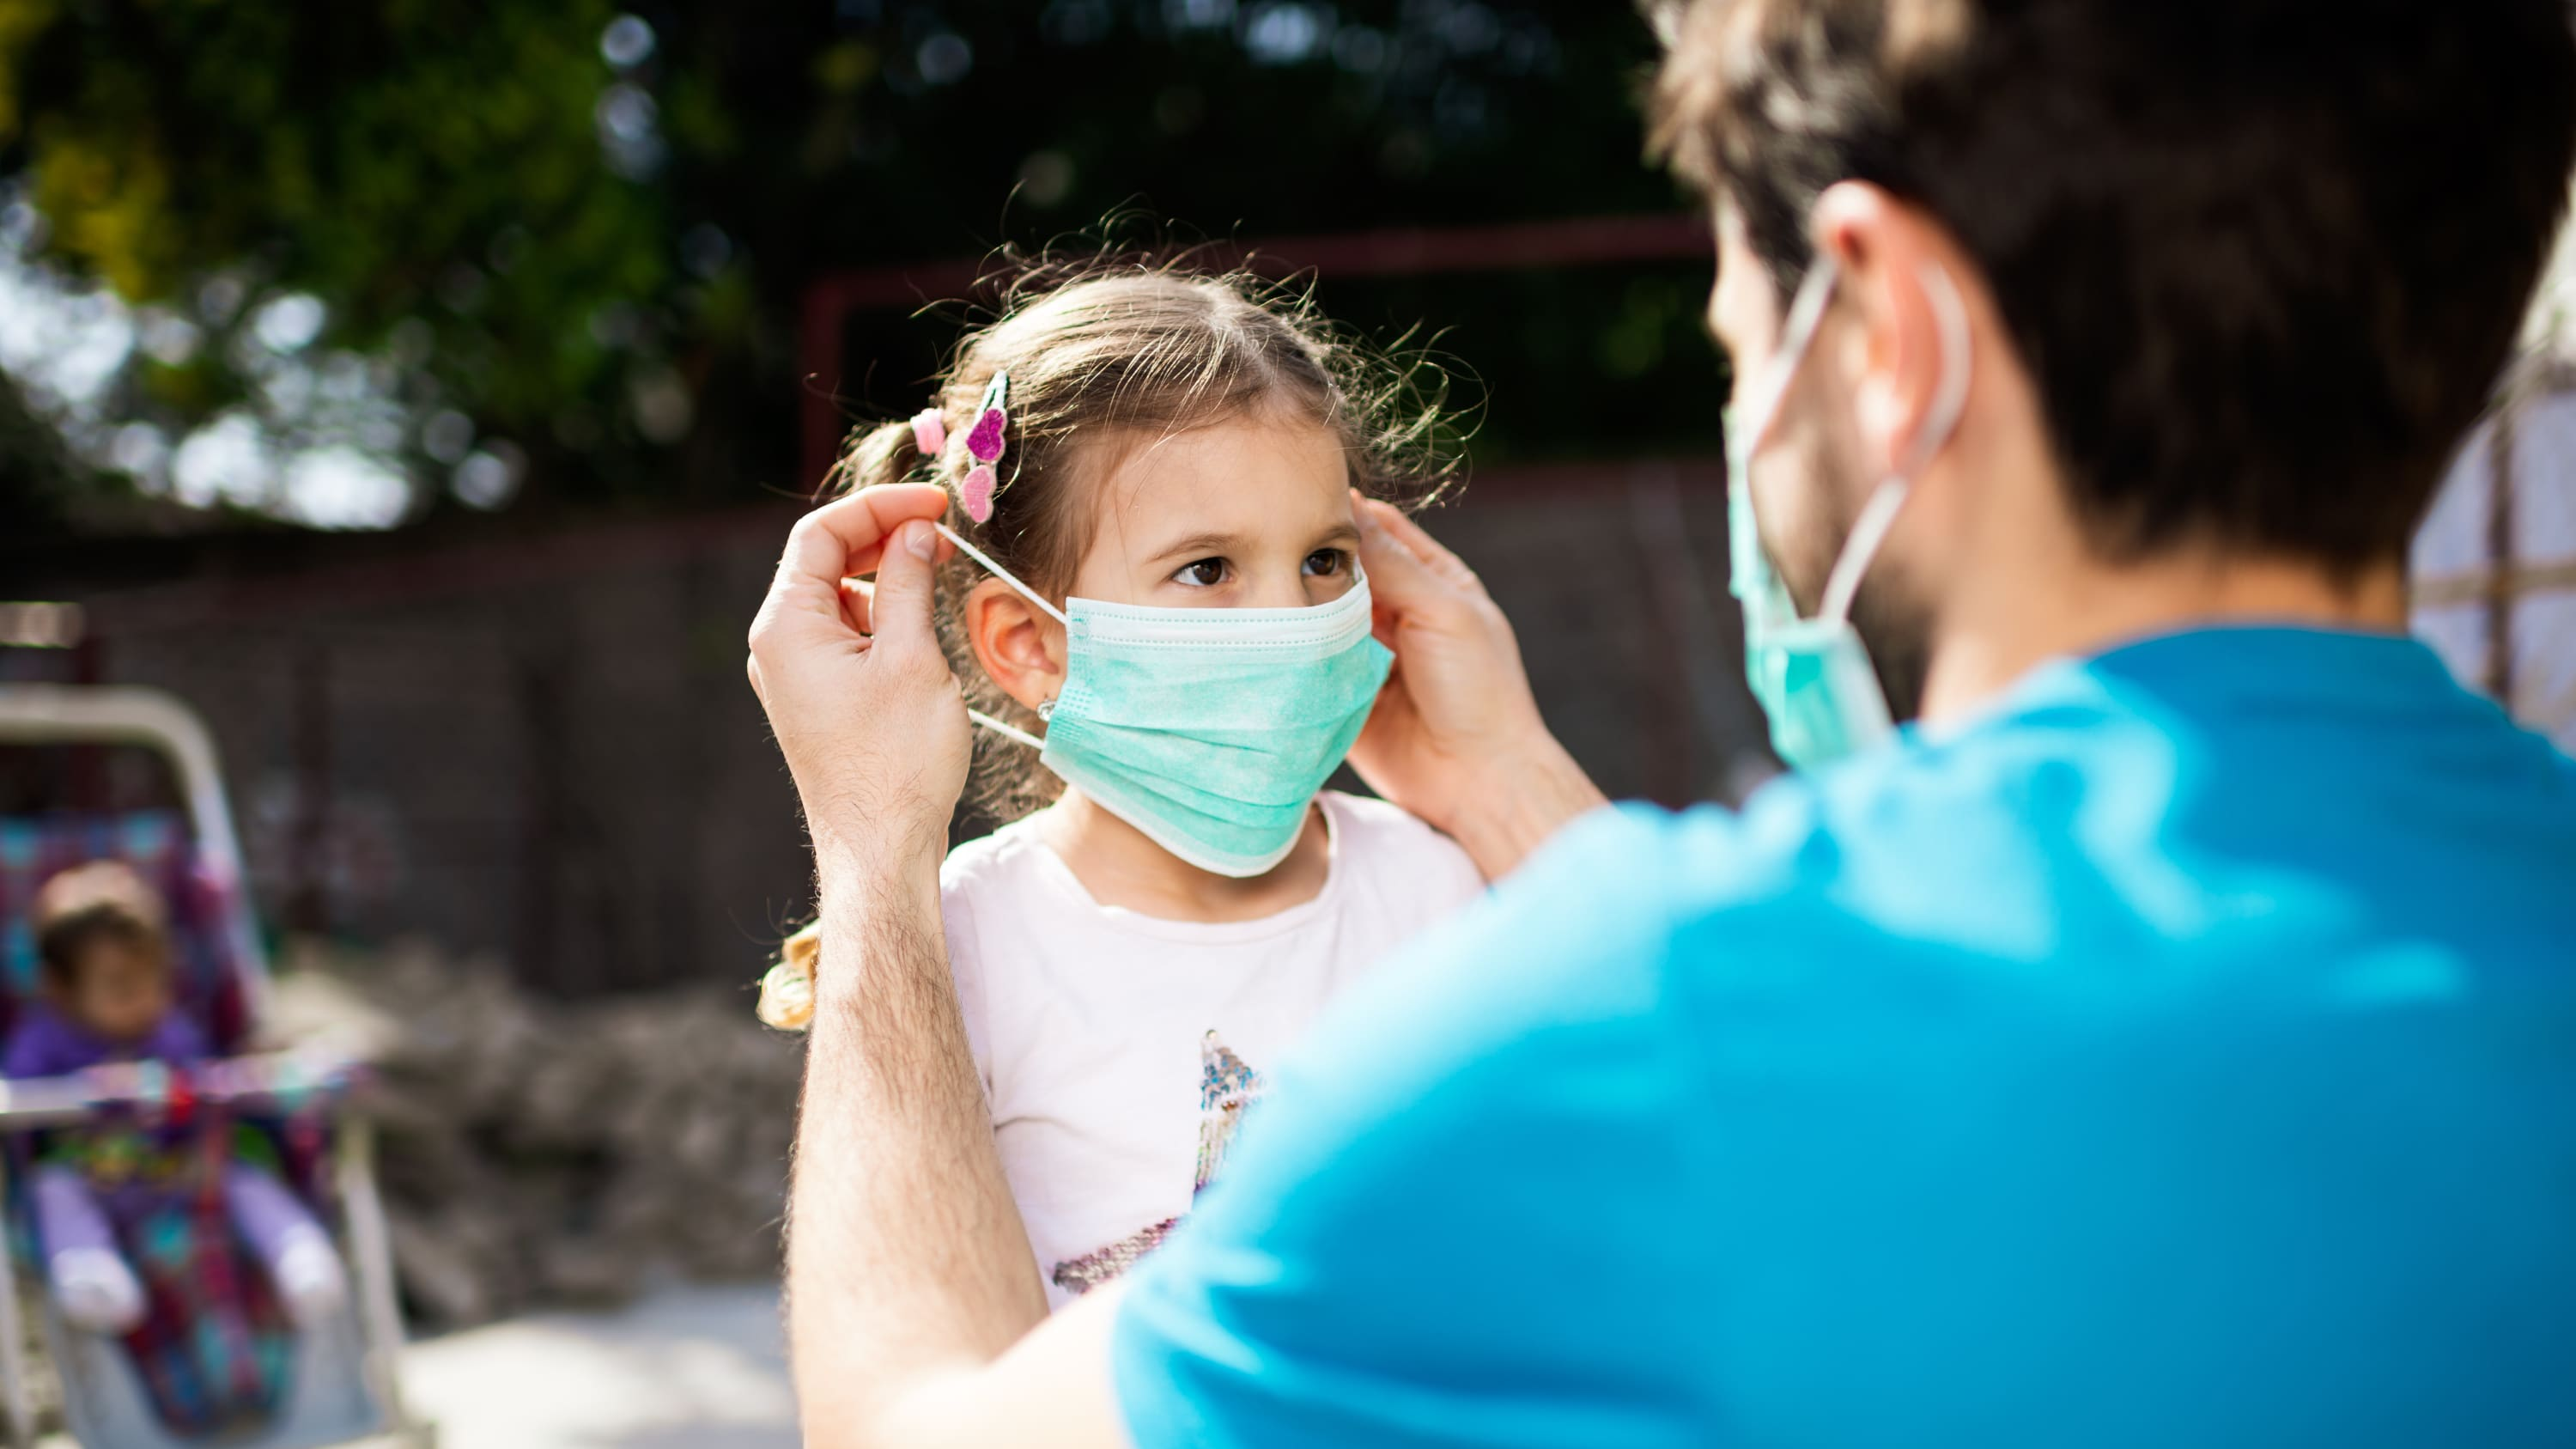 father putting mask on his daughter, possibly to protect against covid-19-related PMIS